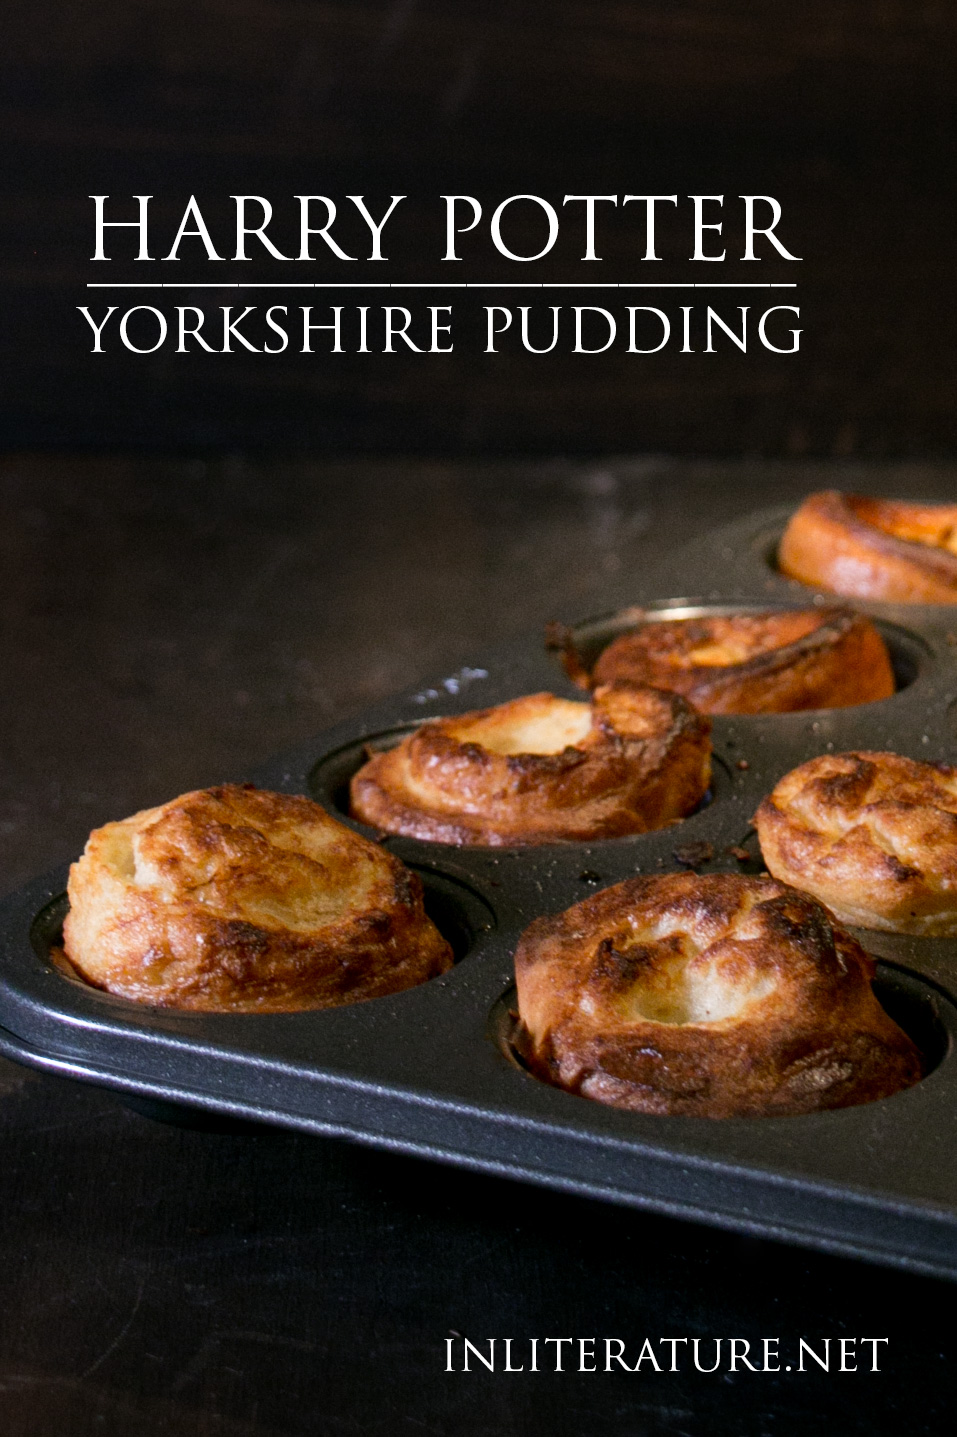 Yorkshire pudding is usually eaten with a Sunday roast (in Harry's case, at Hogwarts), but you can whip up these easy little puffs just because.